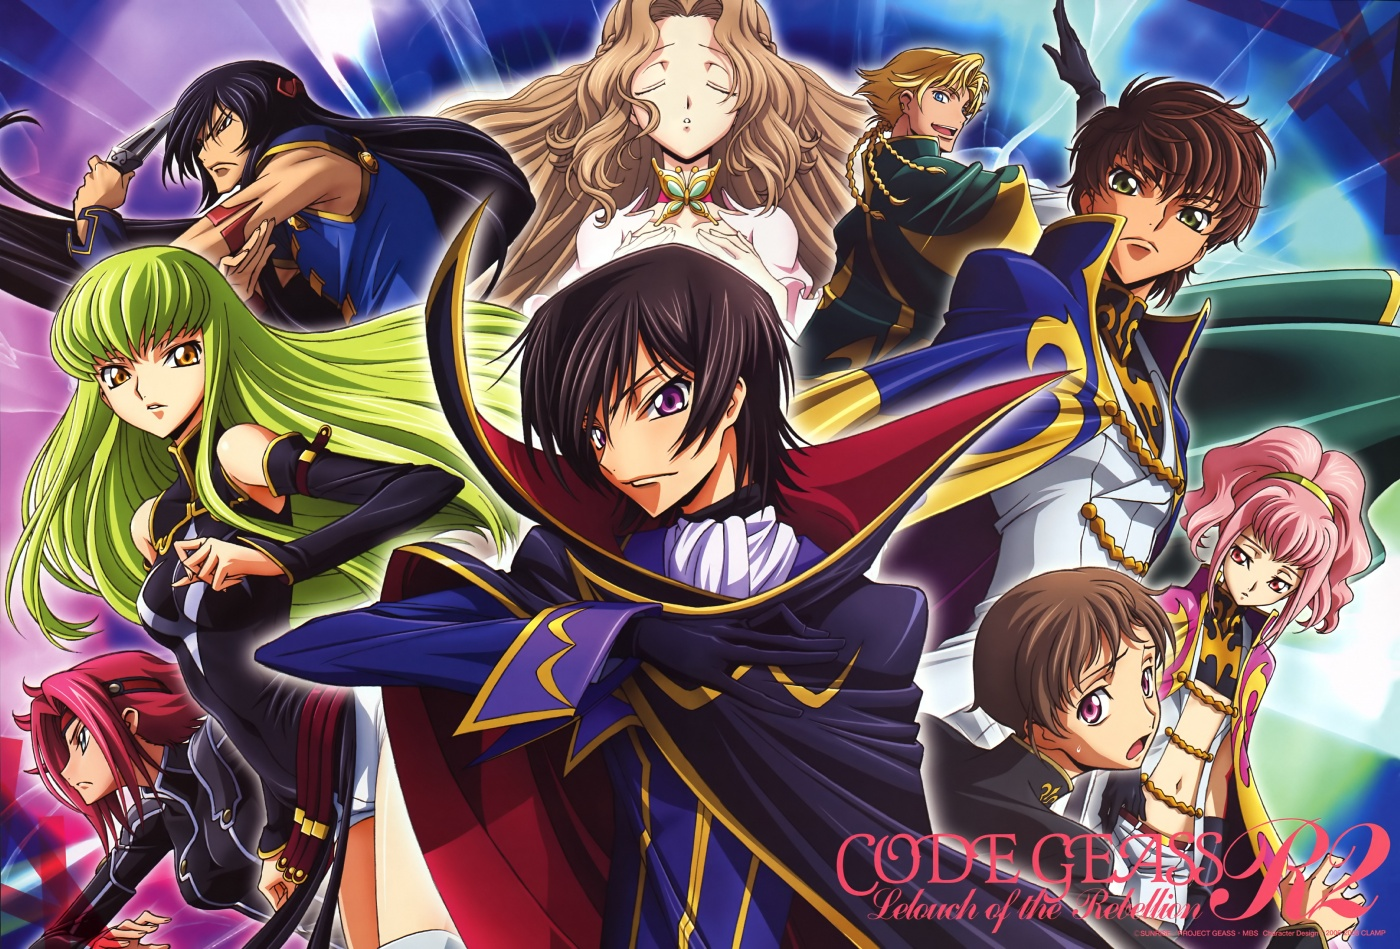 Featured image for Does Code Geass Survive The Test of Time?